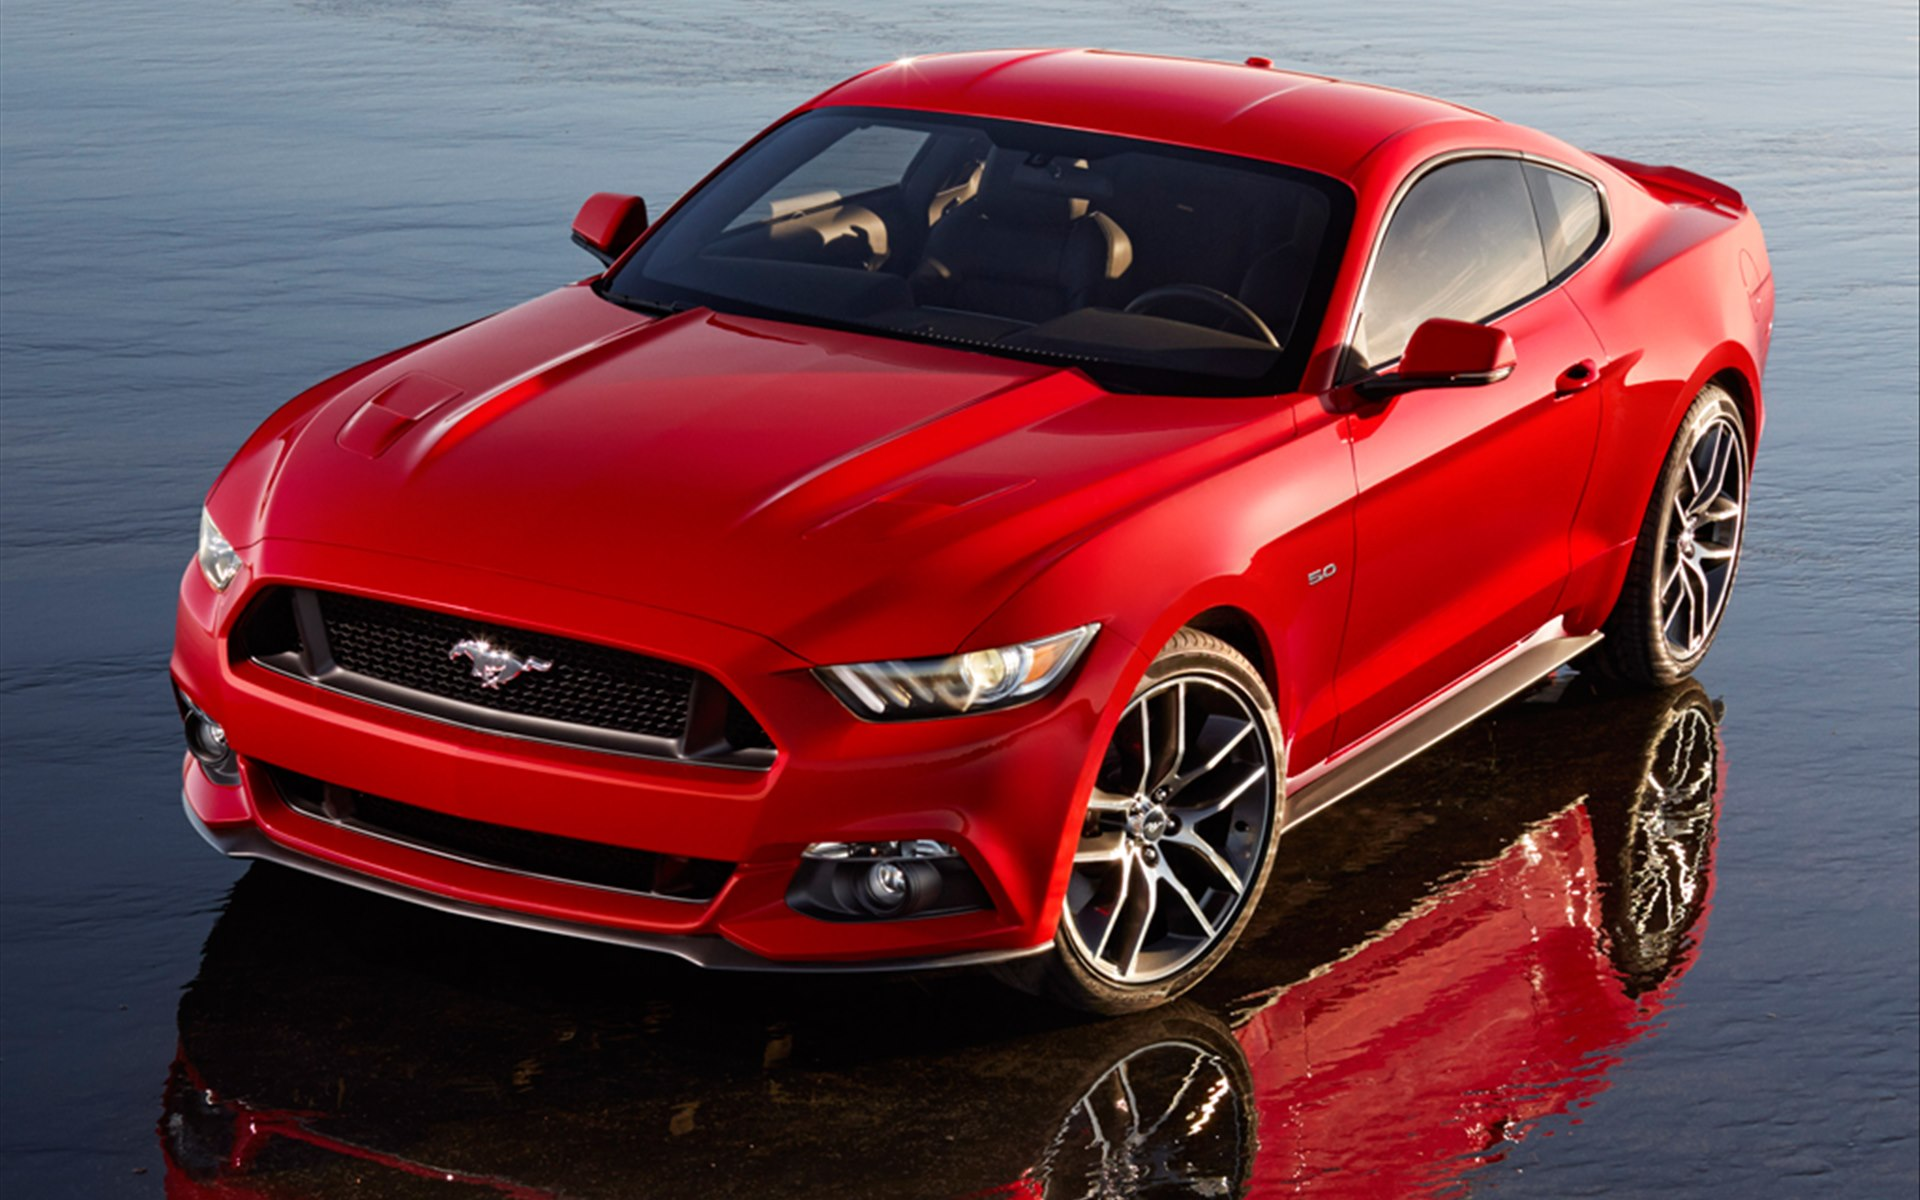 2019 Ford Mustang Miller photo - 6